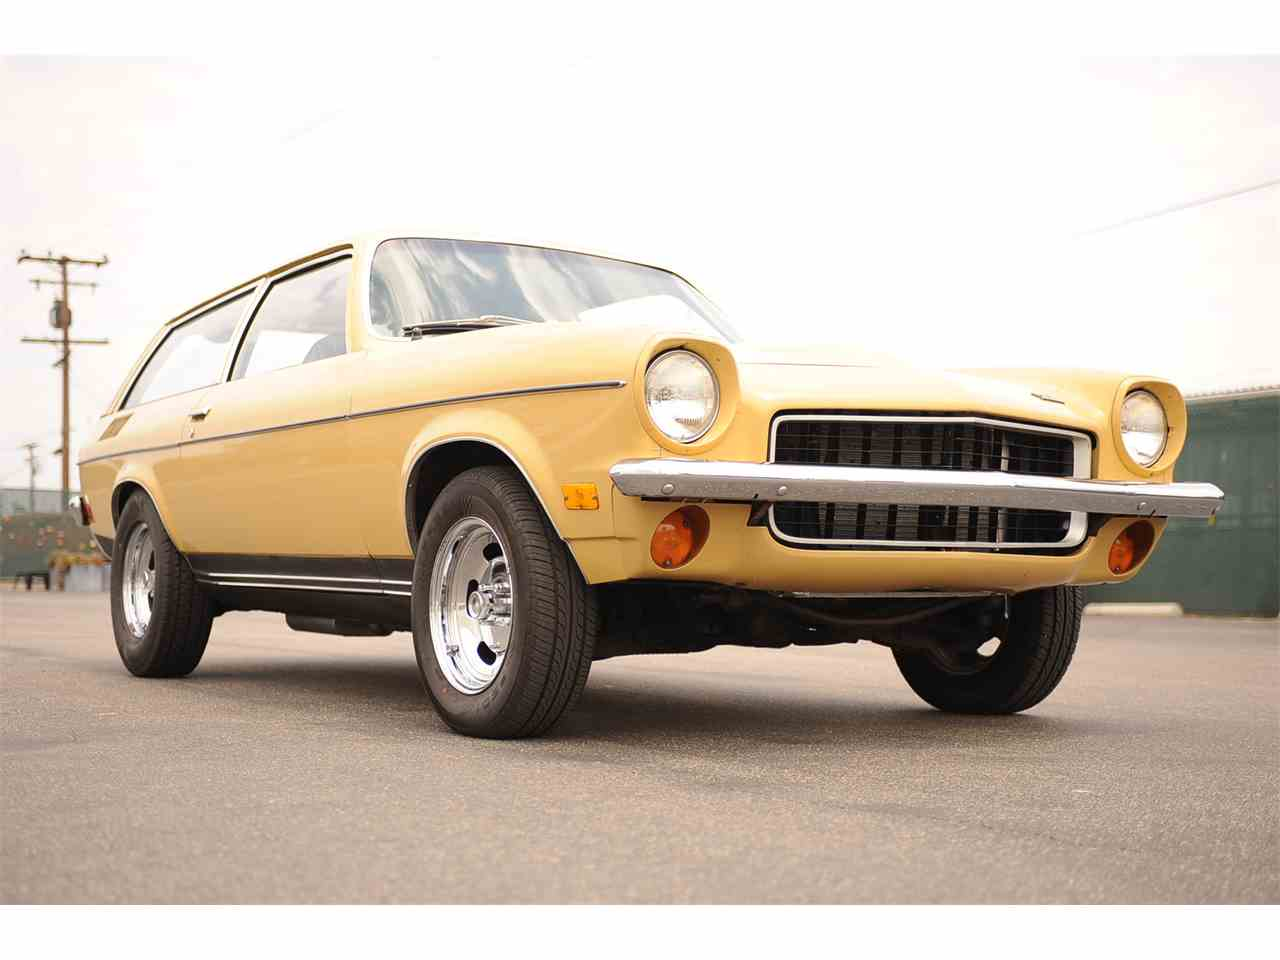 Large Picture of Classic 1973 Chevrolet Vega located in Costa mesa California - $17,500.00 Offered by a Private Seller - LFY9